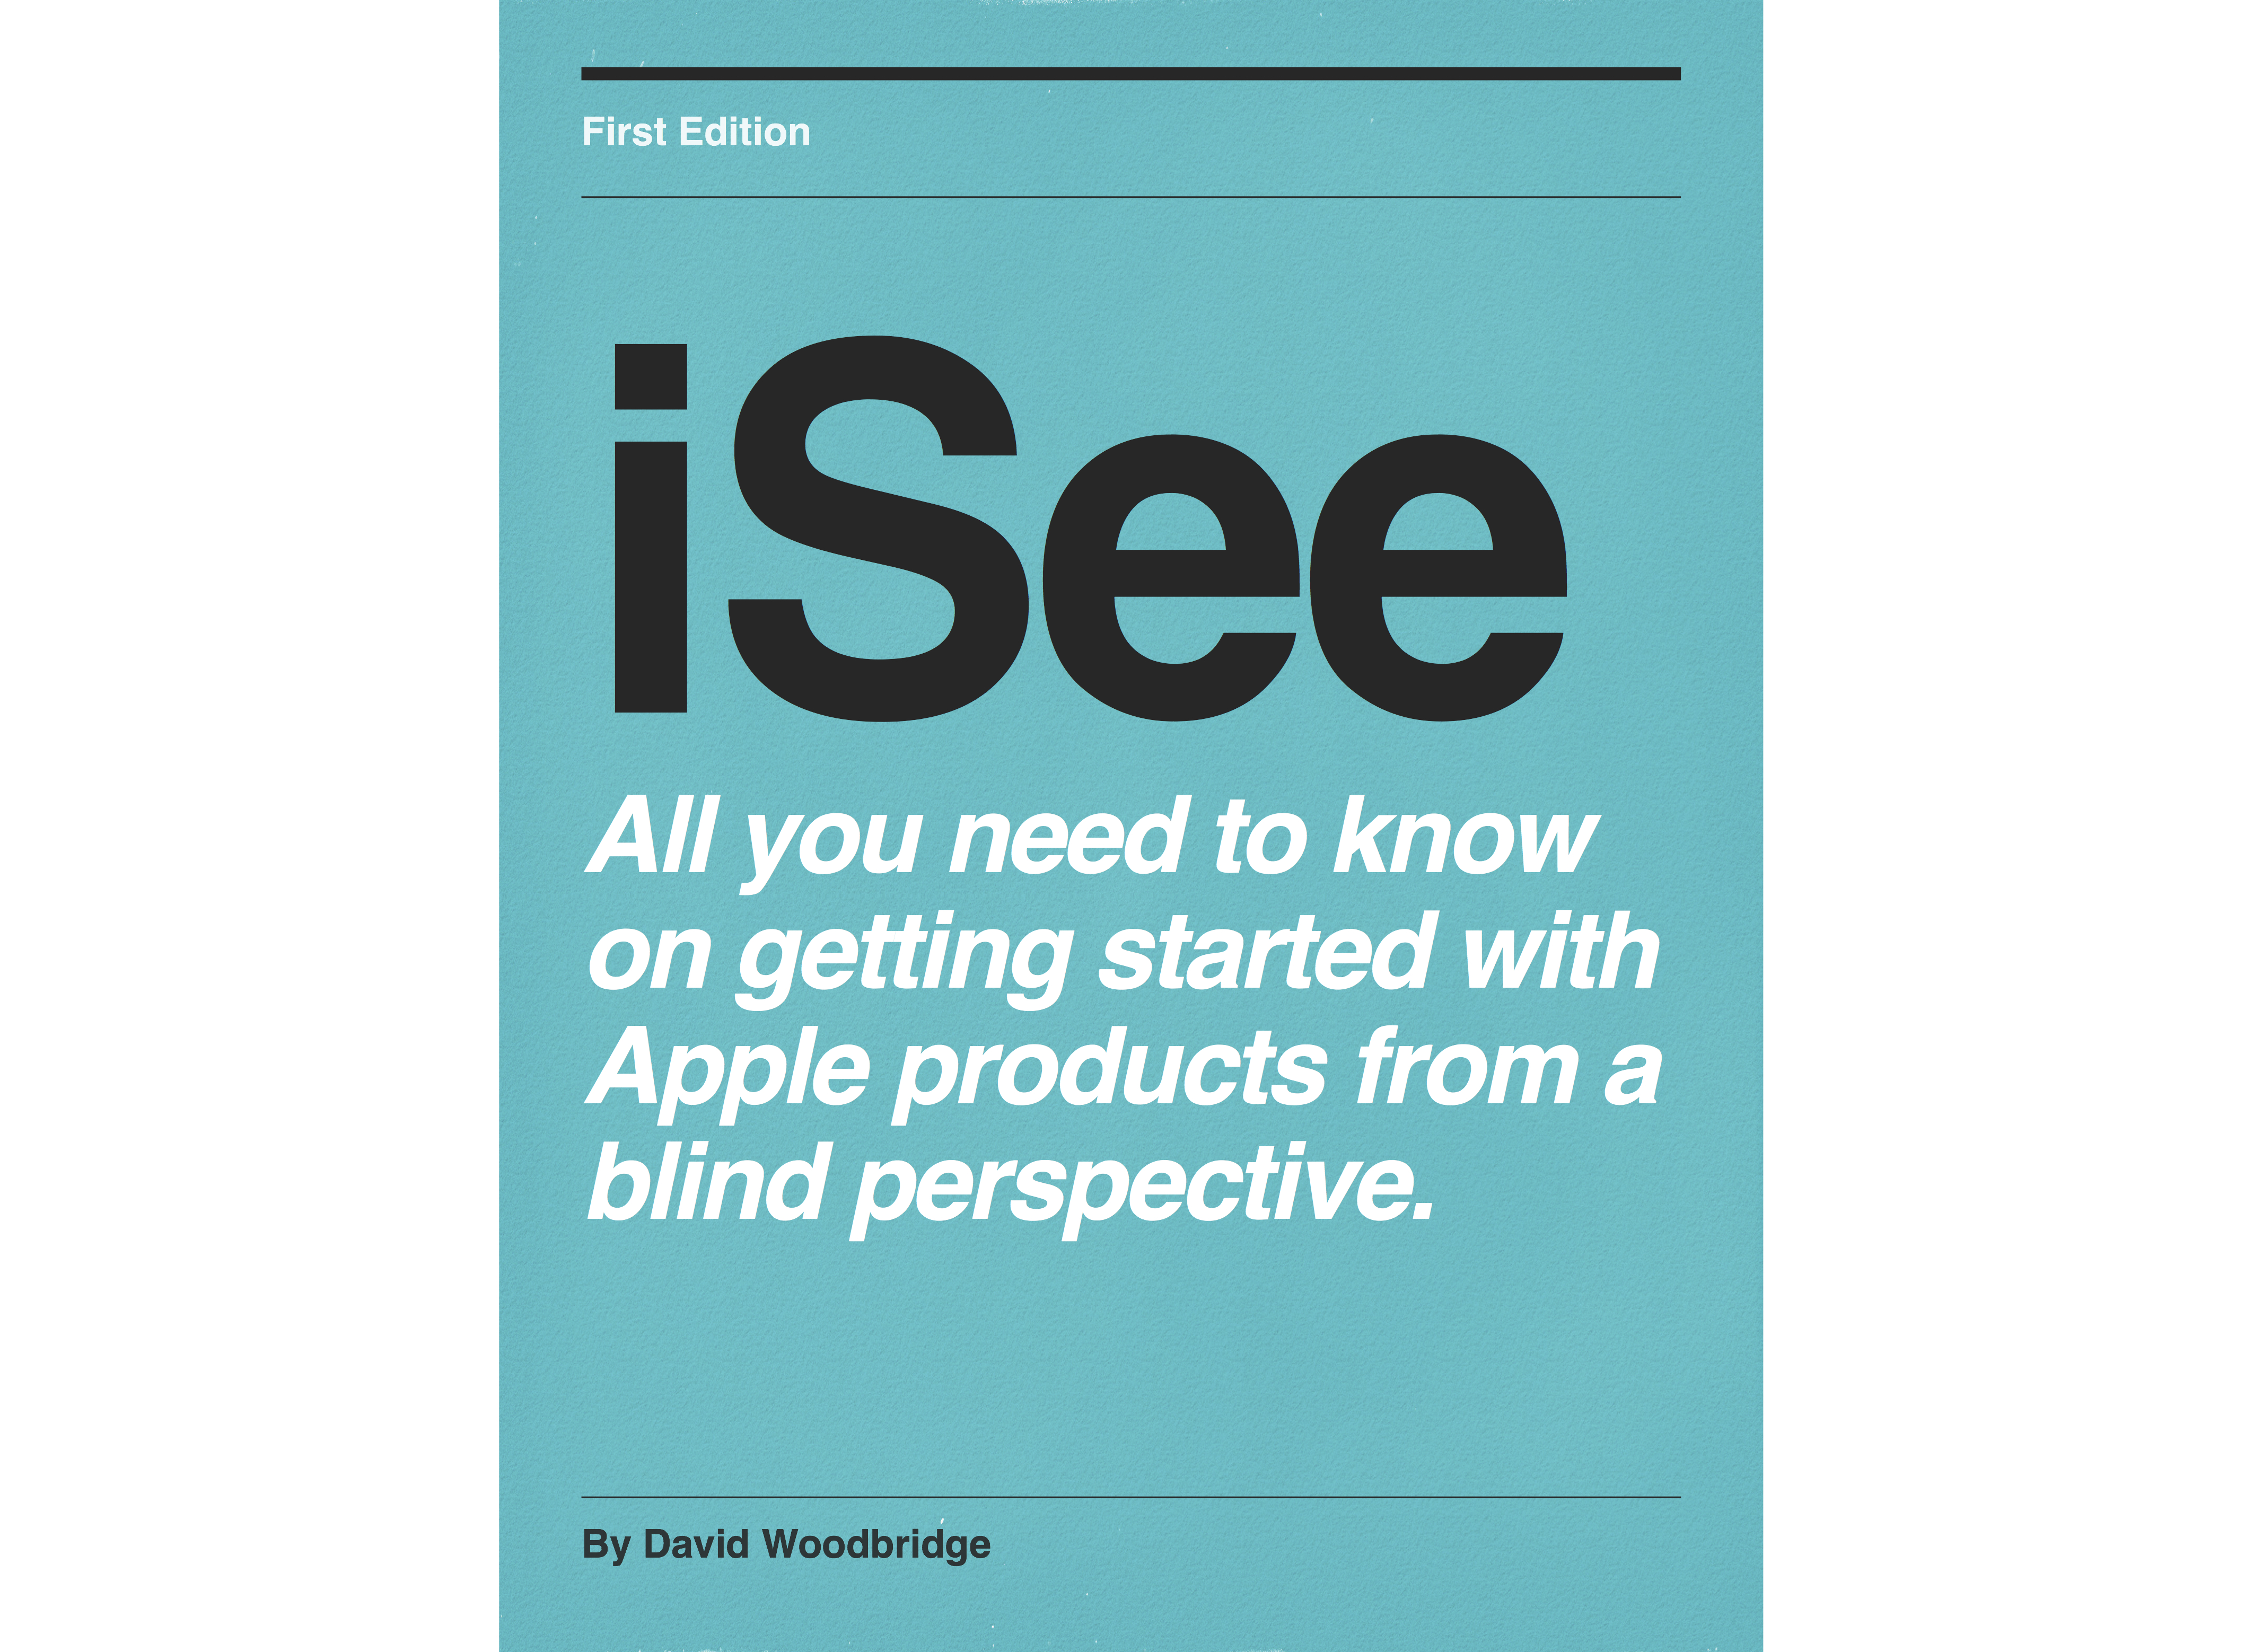 iSee - Using various technologies from a blind persons perspective.